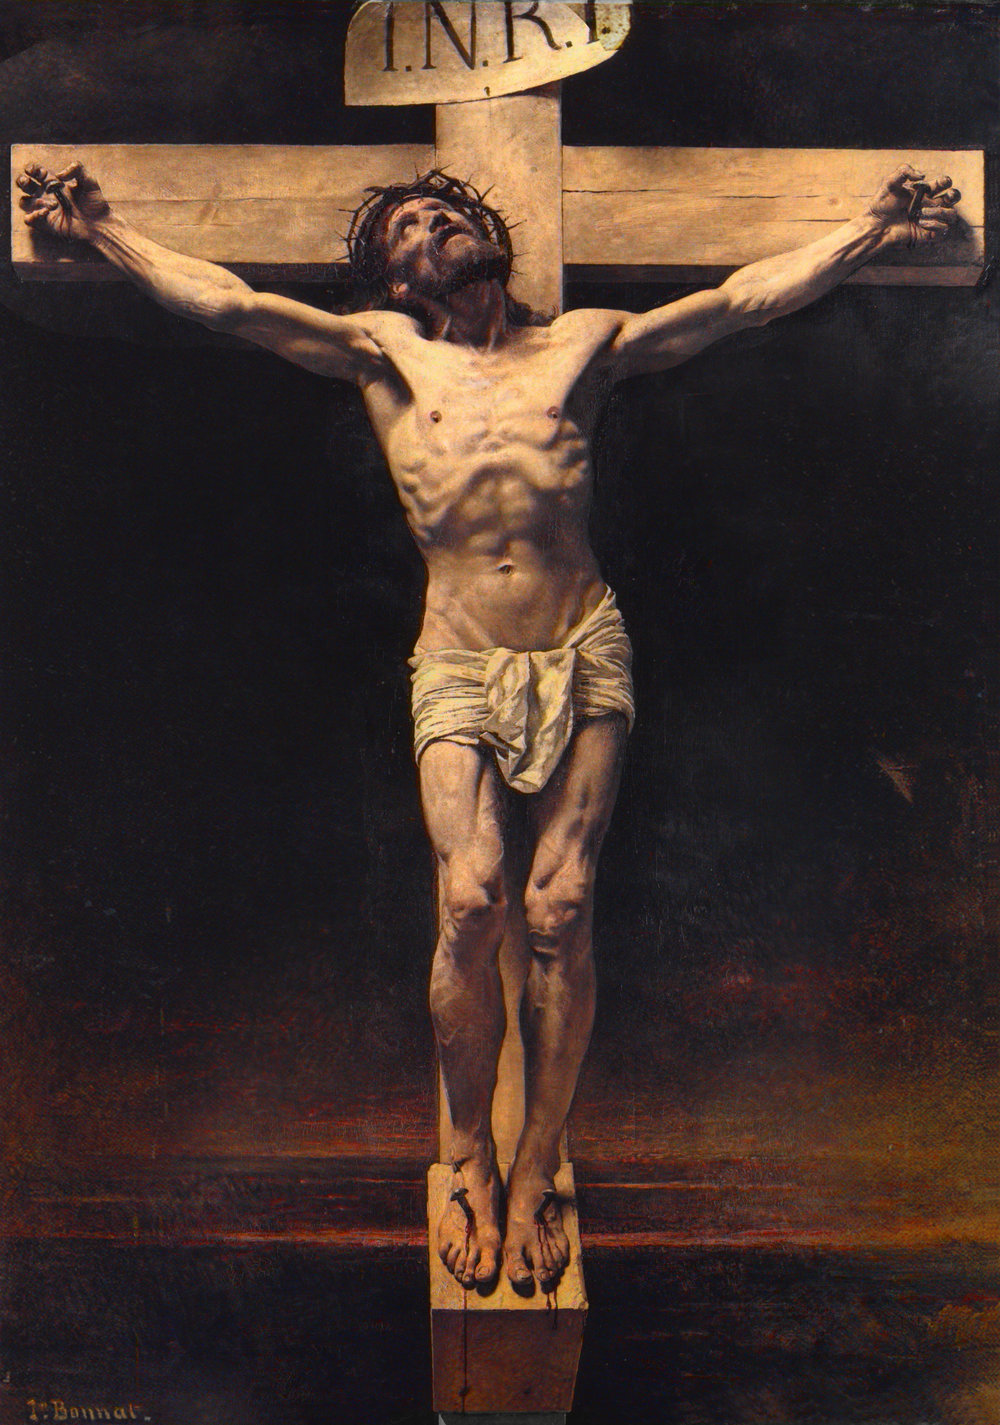 Christ on the Cross, Leon Bonnat, oil on canvas, 1874